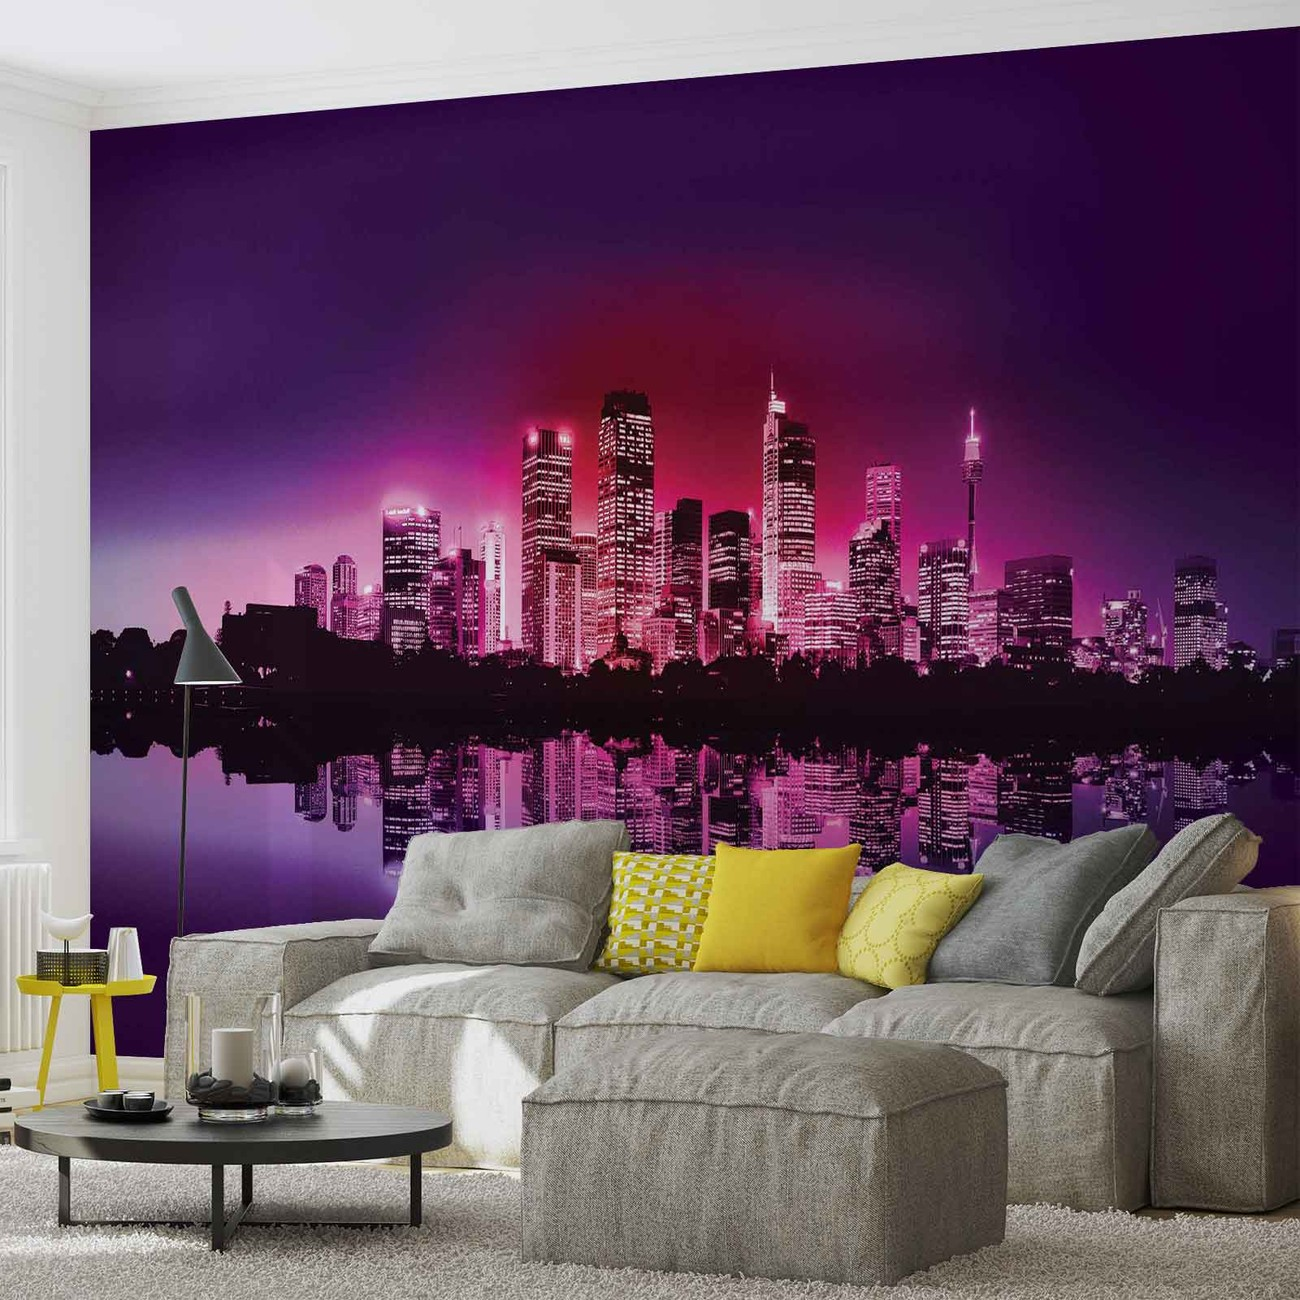 city new york skyline wall paper mural buy at europosters. Black Bedroom Furniture Sets. Home Design Ideas